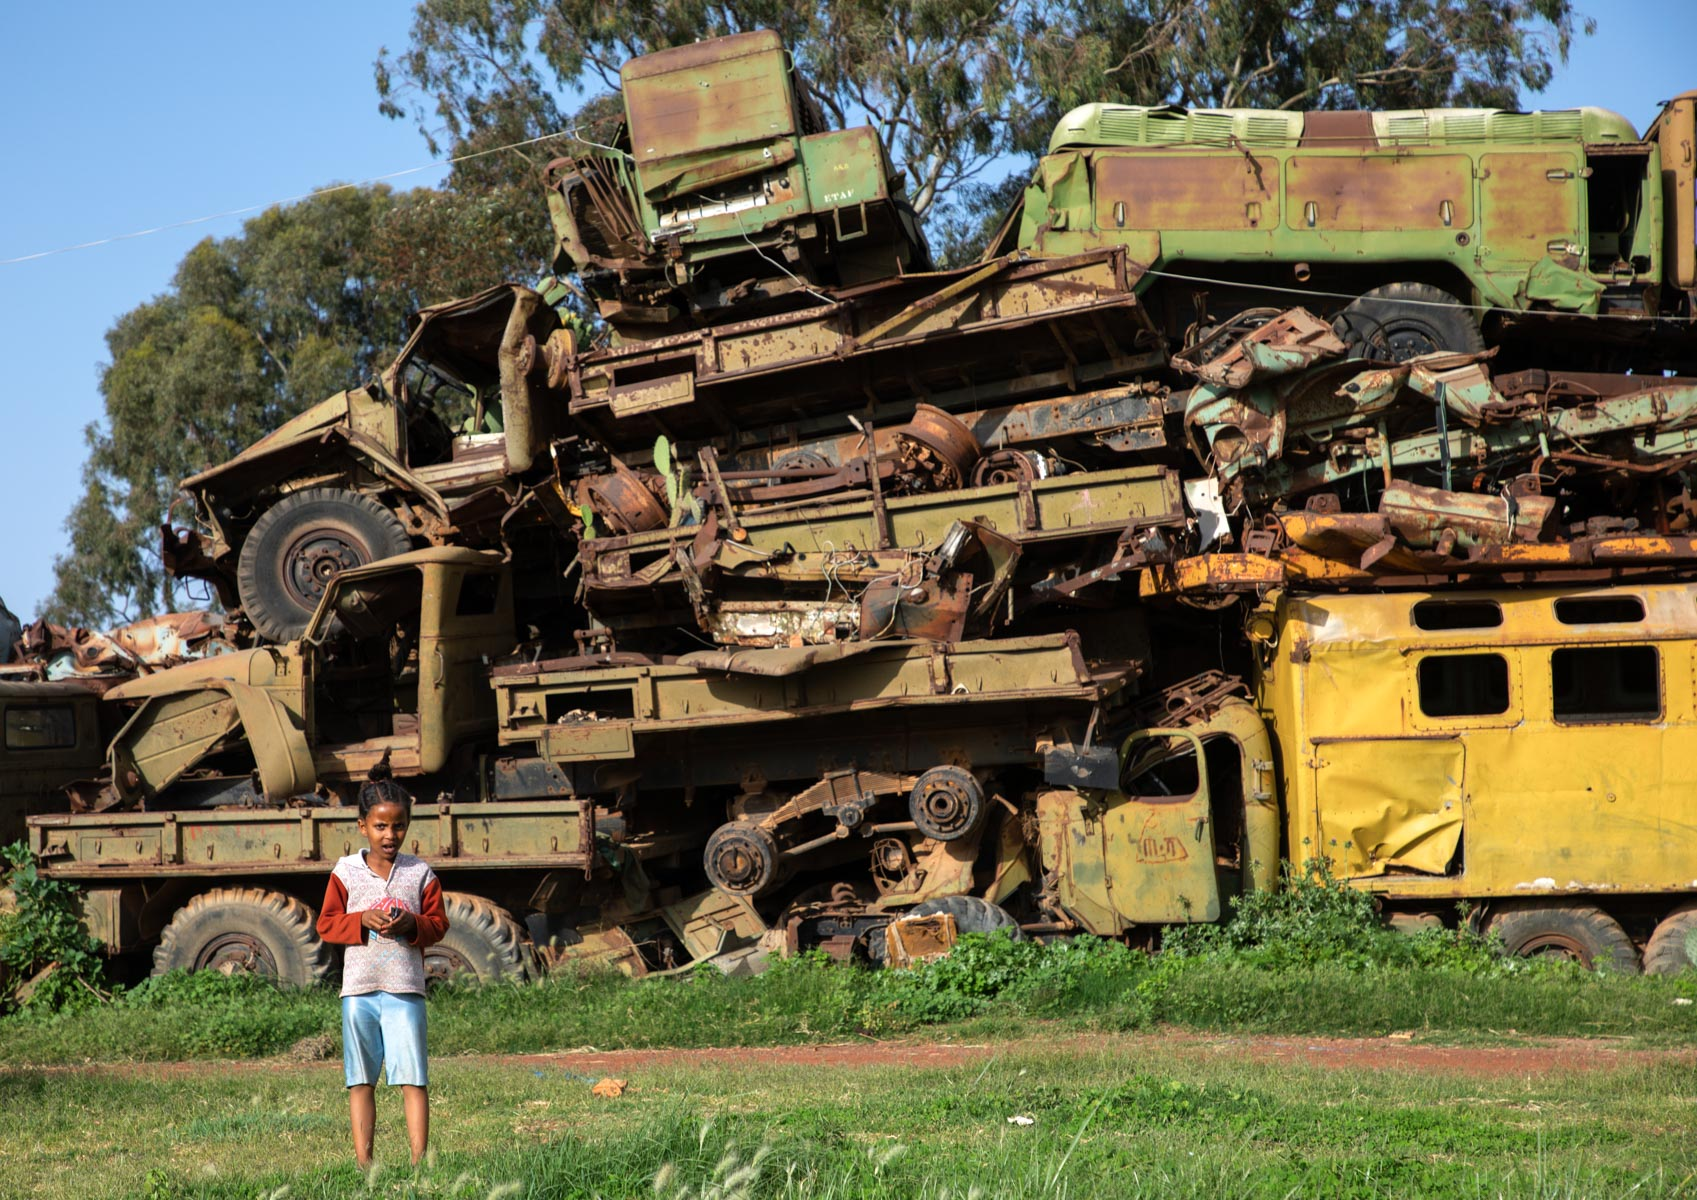 22 August 2019: An Eritrean child plays in the military vehicle graveyard in the capital city of Asmara. (Photograph by Eric Lafforgue/ Art in All of Us/ Corbis via Getty Images)